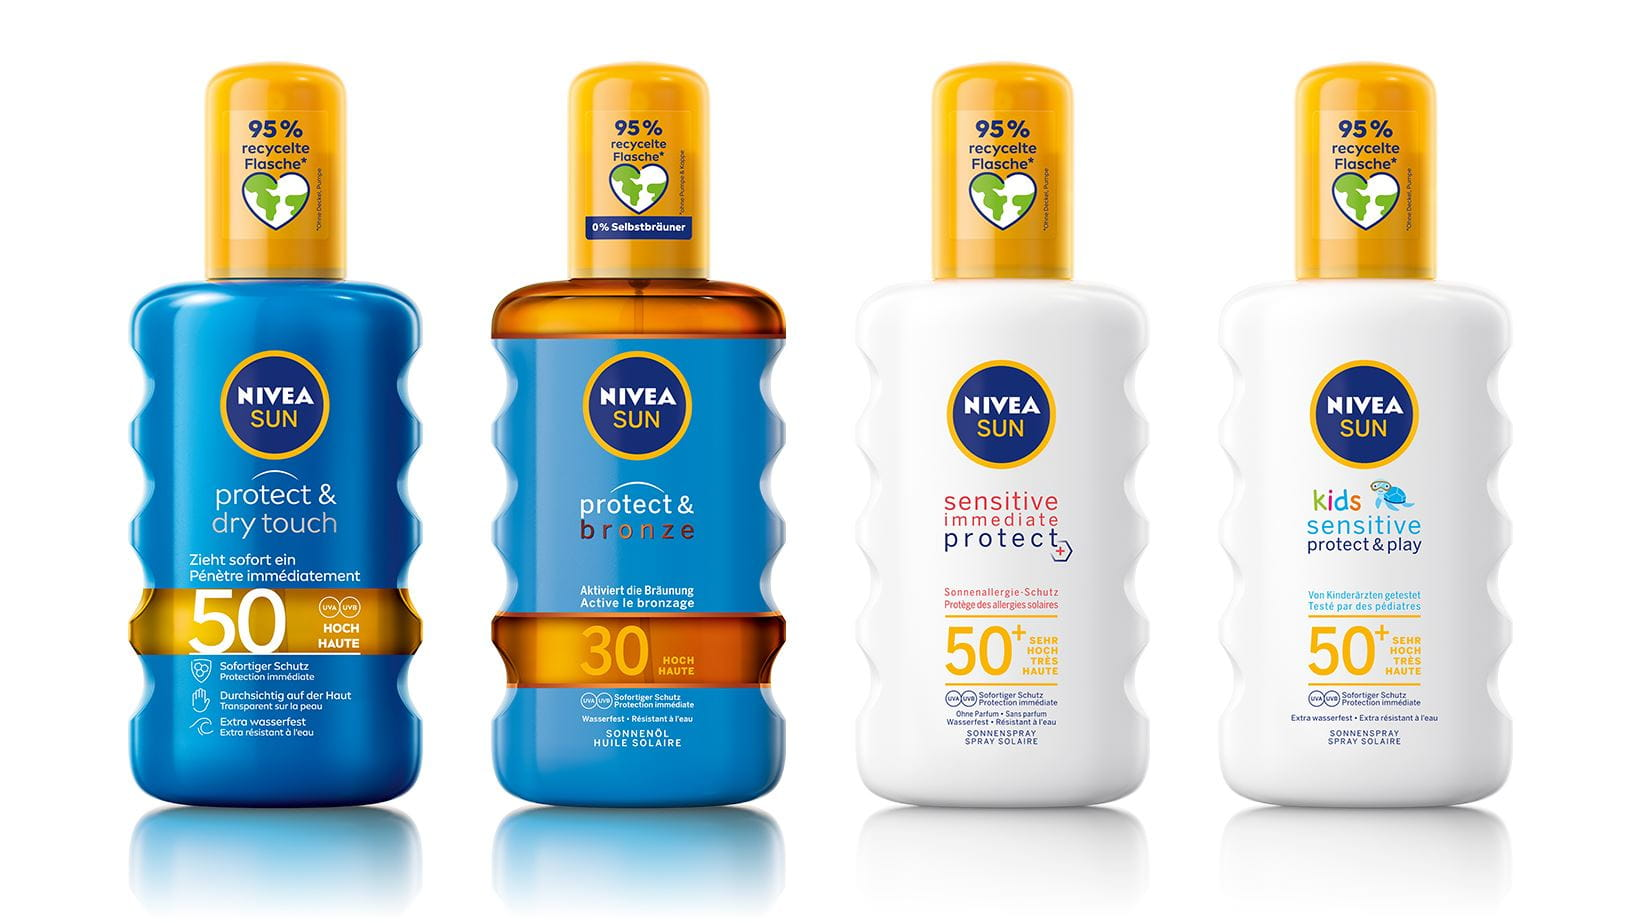 Protect & Dry Touch Spray LSF 50, Protect & Bronze Sonnenöl LSF 30, Sensitive Immediate Protect LSF 50+, Kids Protect & Sensitive LSF 50+